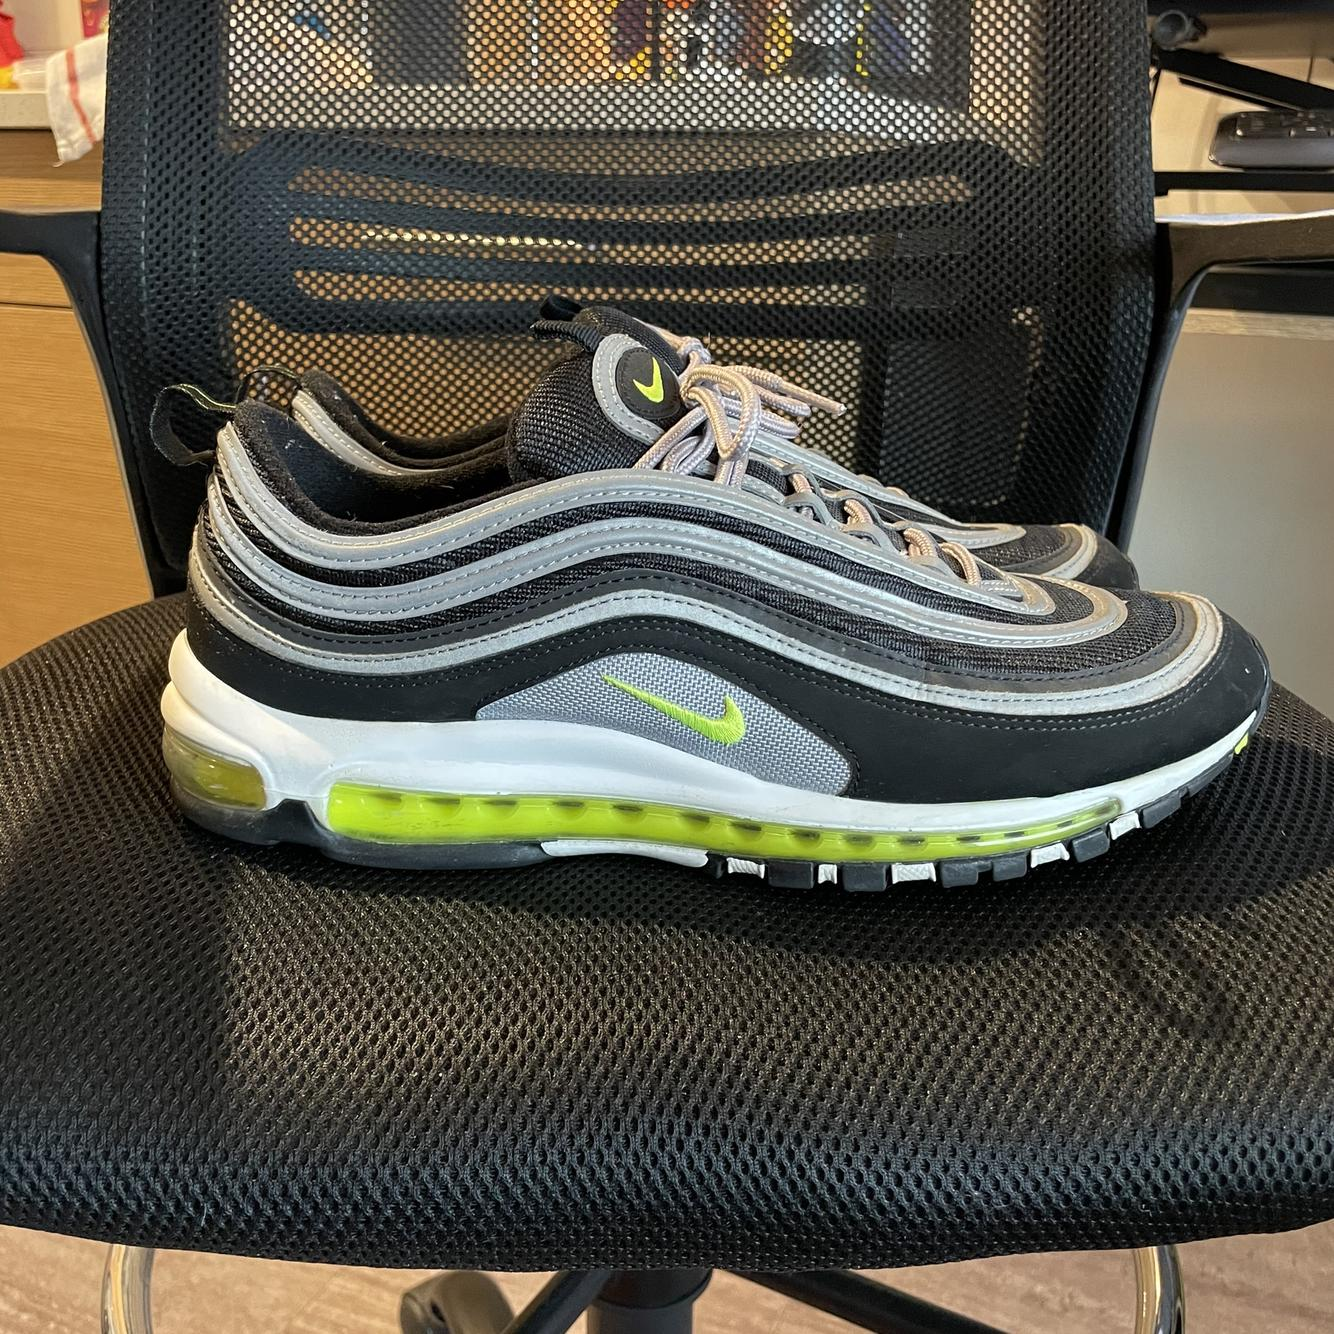 Nike Air Max 97 OG Neon Size 13 | SidelineSwap